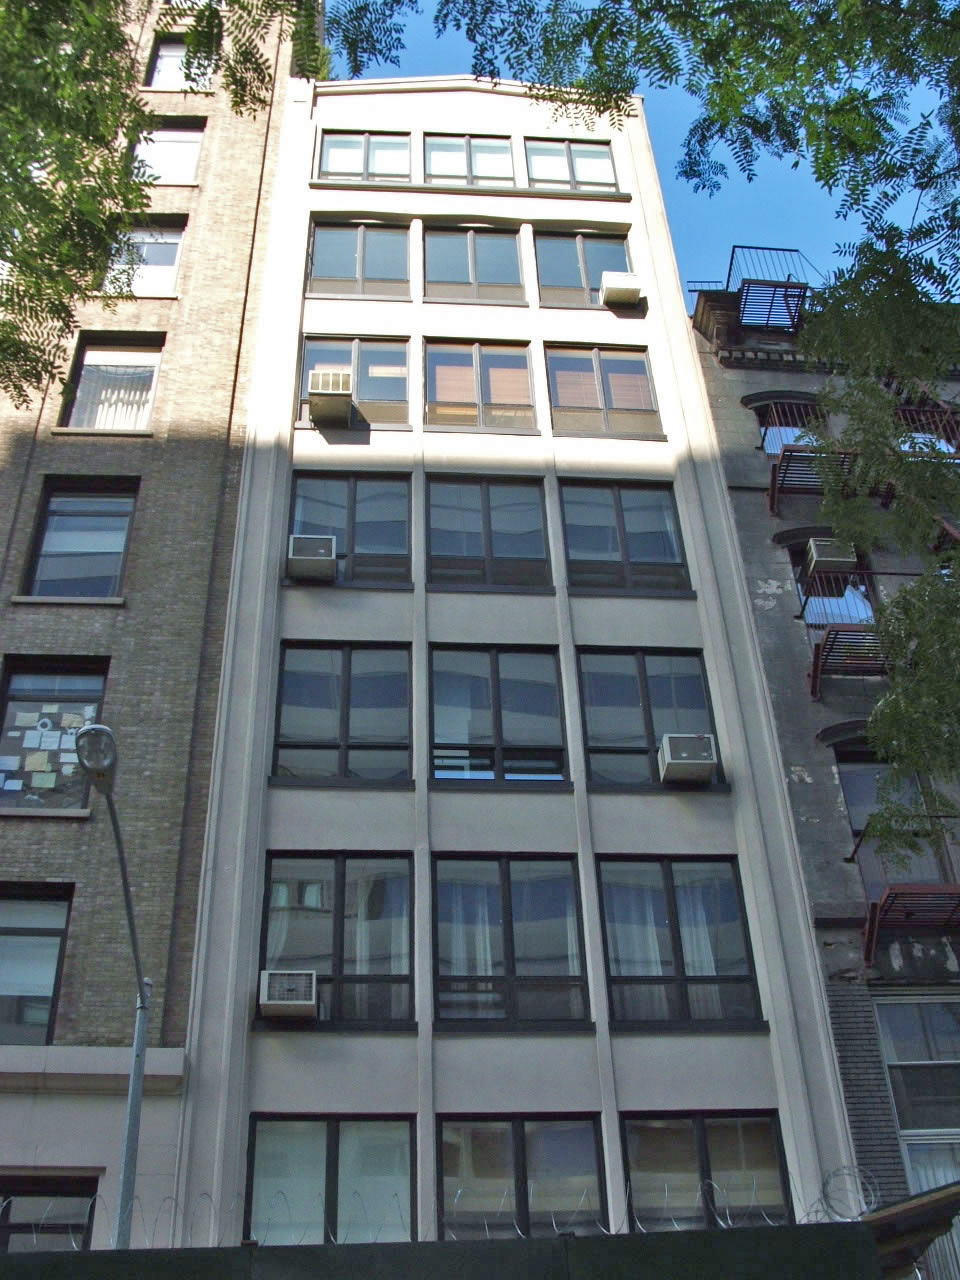 Corcoran 69 murray st apt 8 fl tribeca real estate for Tribeca property for sale